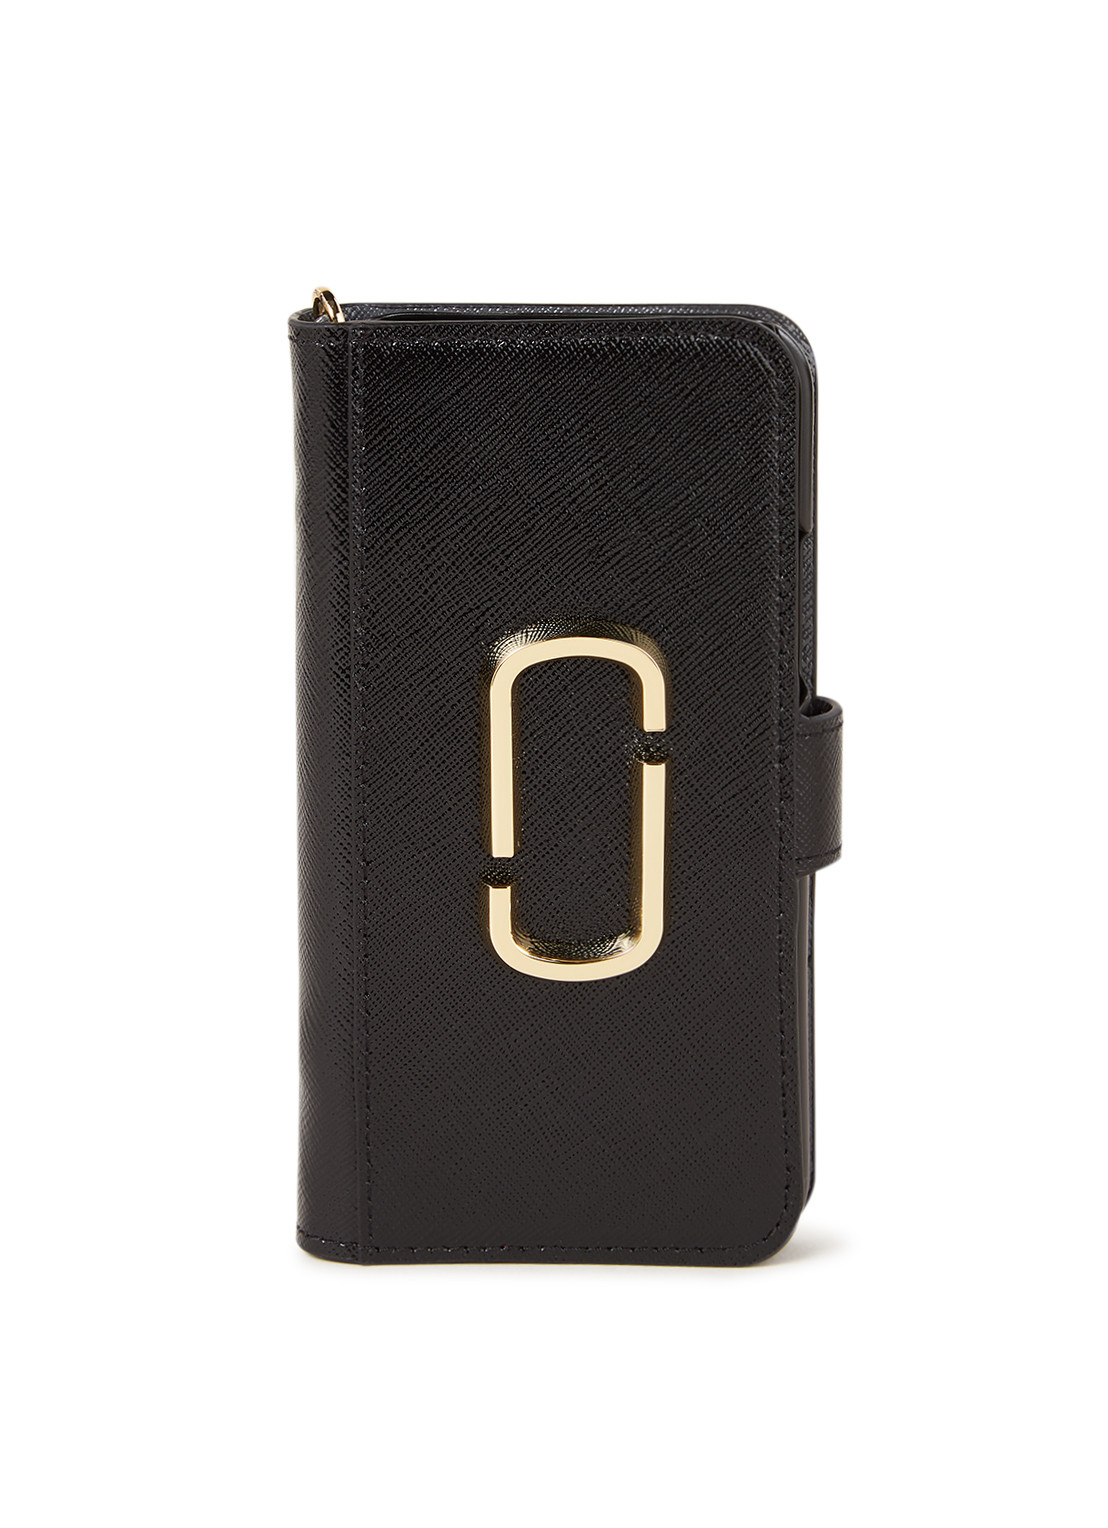 Marc Jacobs The Chain Strap telefoonhoes voor iPhone 11 Pro